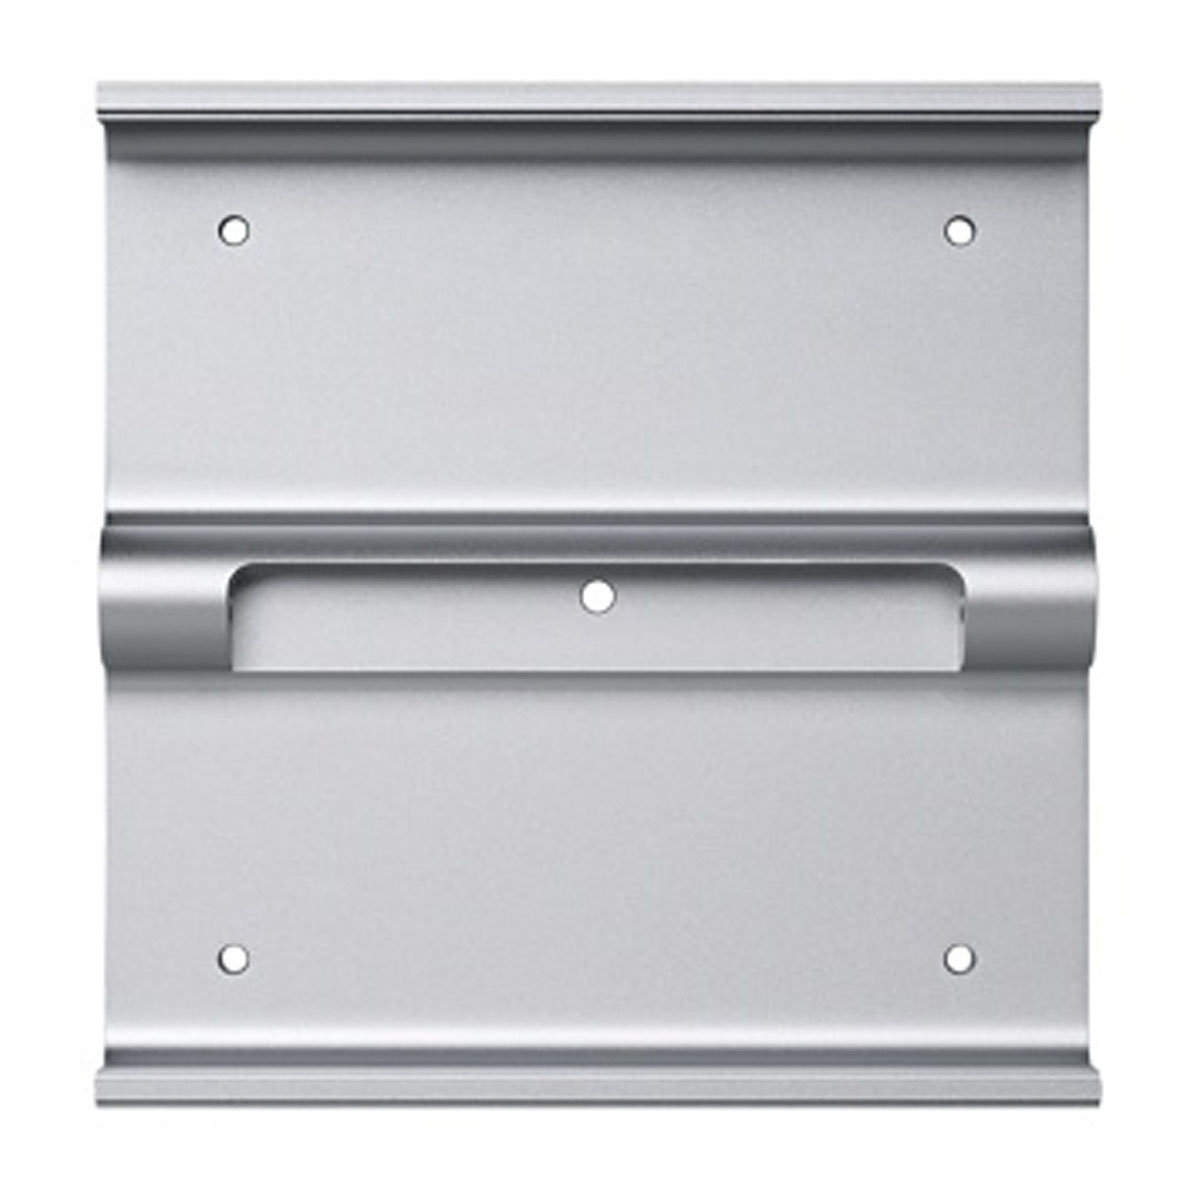 Wall bracket iMac / Thunderbolt Display